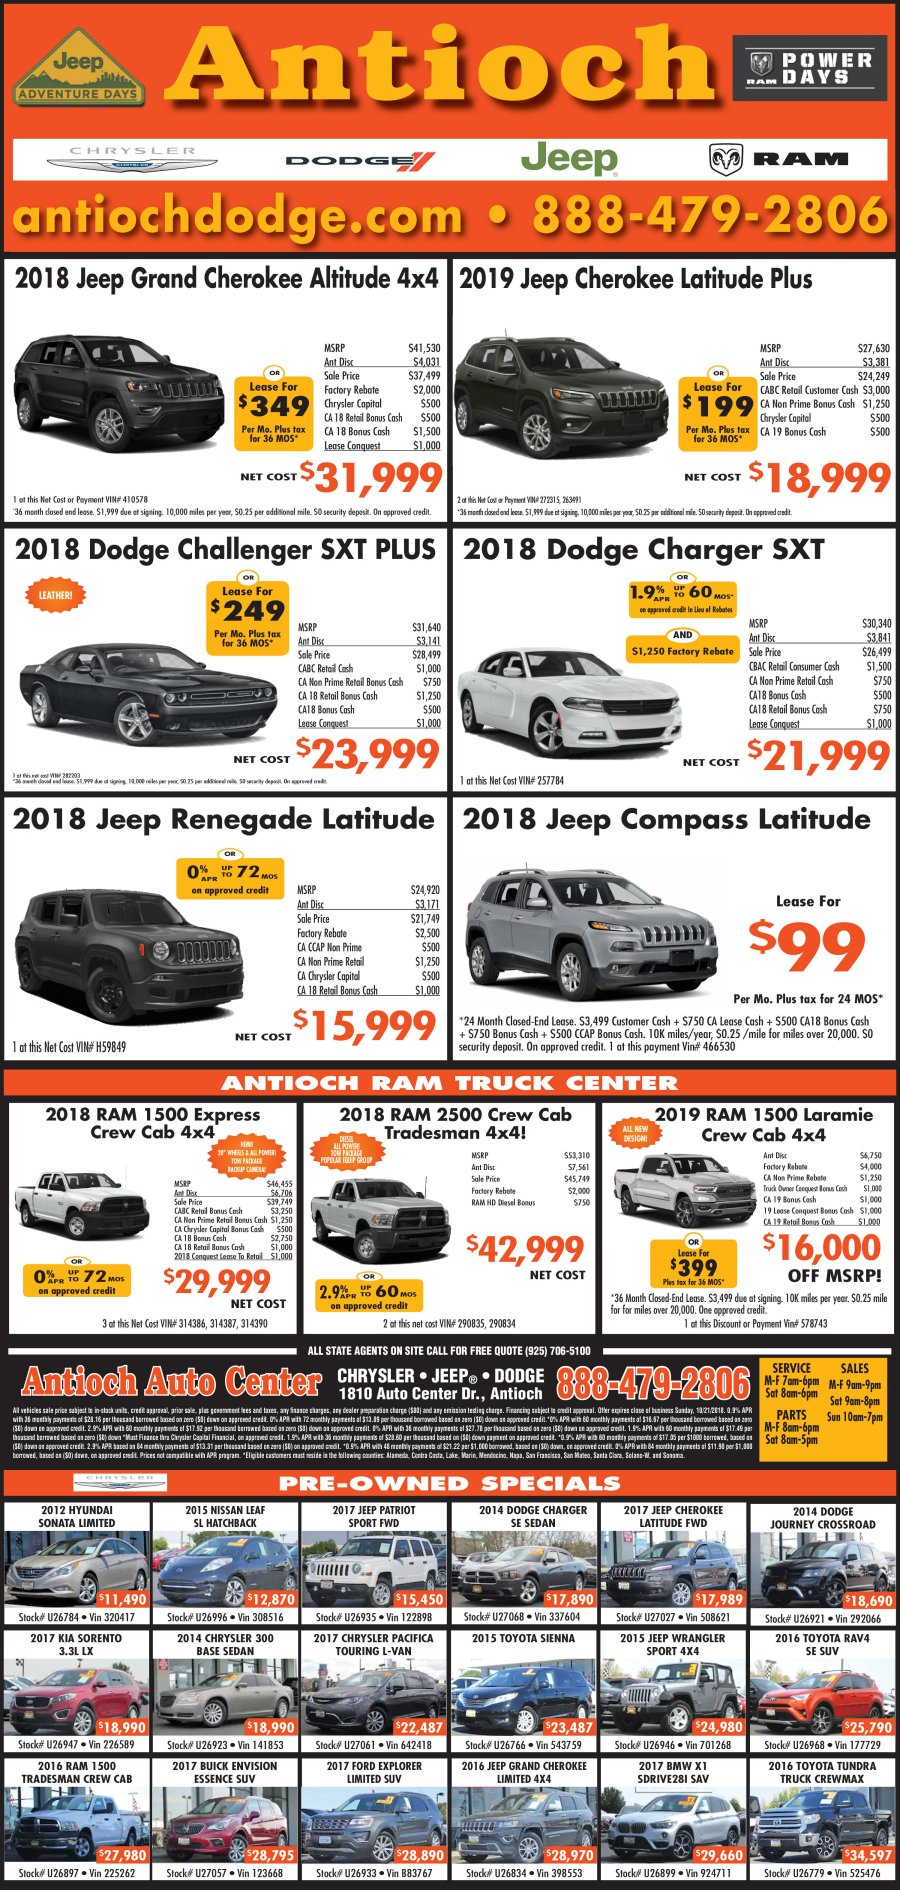 Antioch Chrysler Jeep Dodge Ram Specials! (click Image To Enlarge)